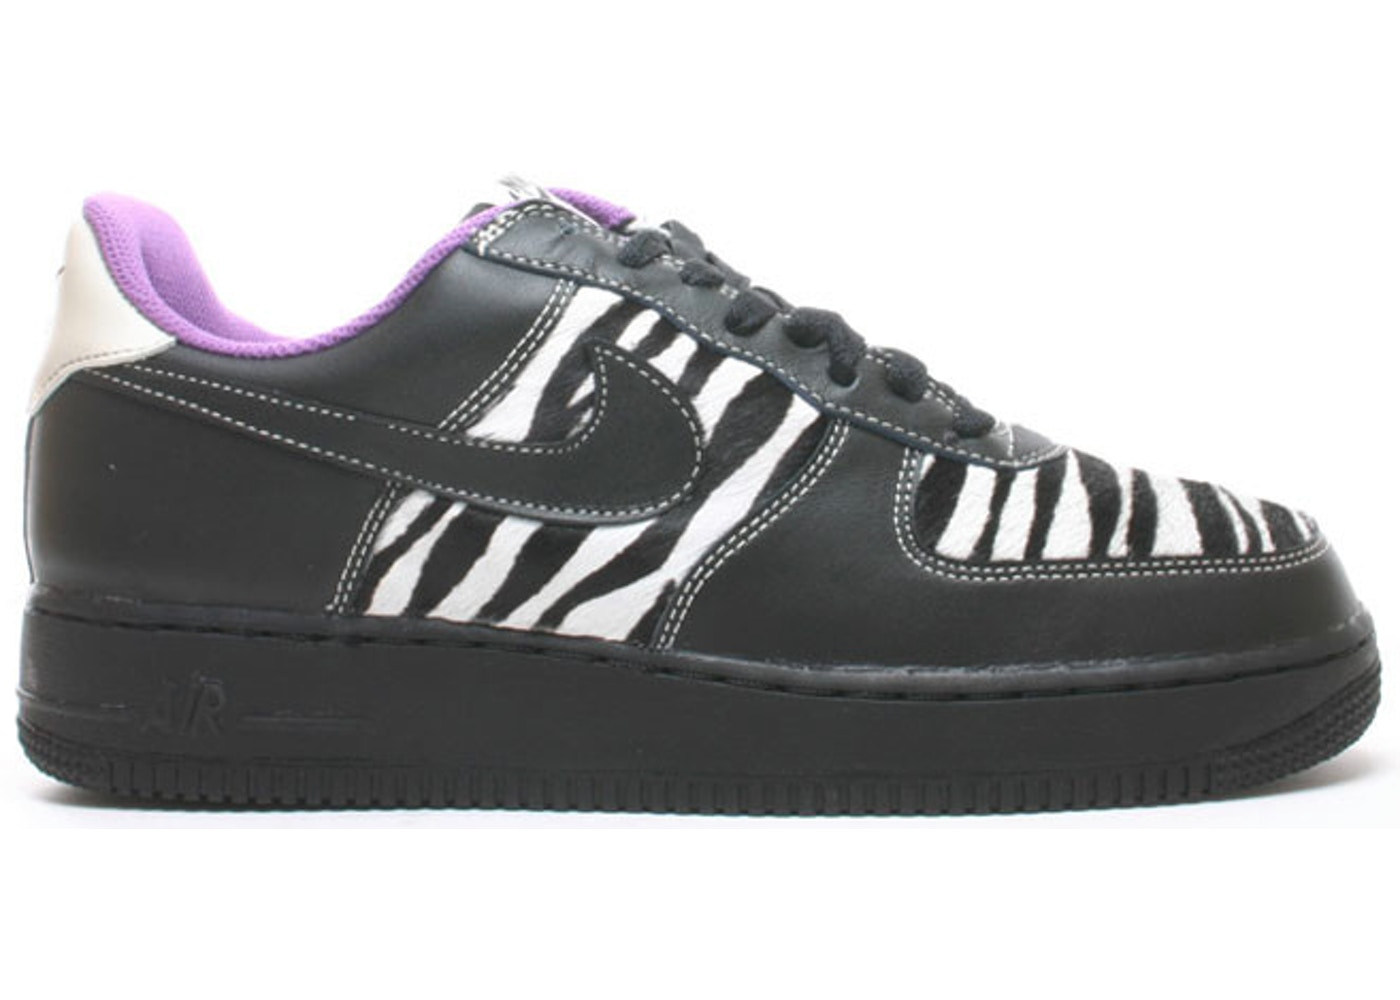 factory outlets cheap prices new product Air Force 1 Low Zebra (GS) - 307109-001